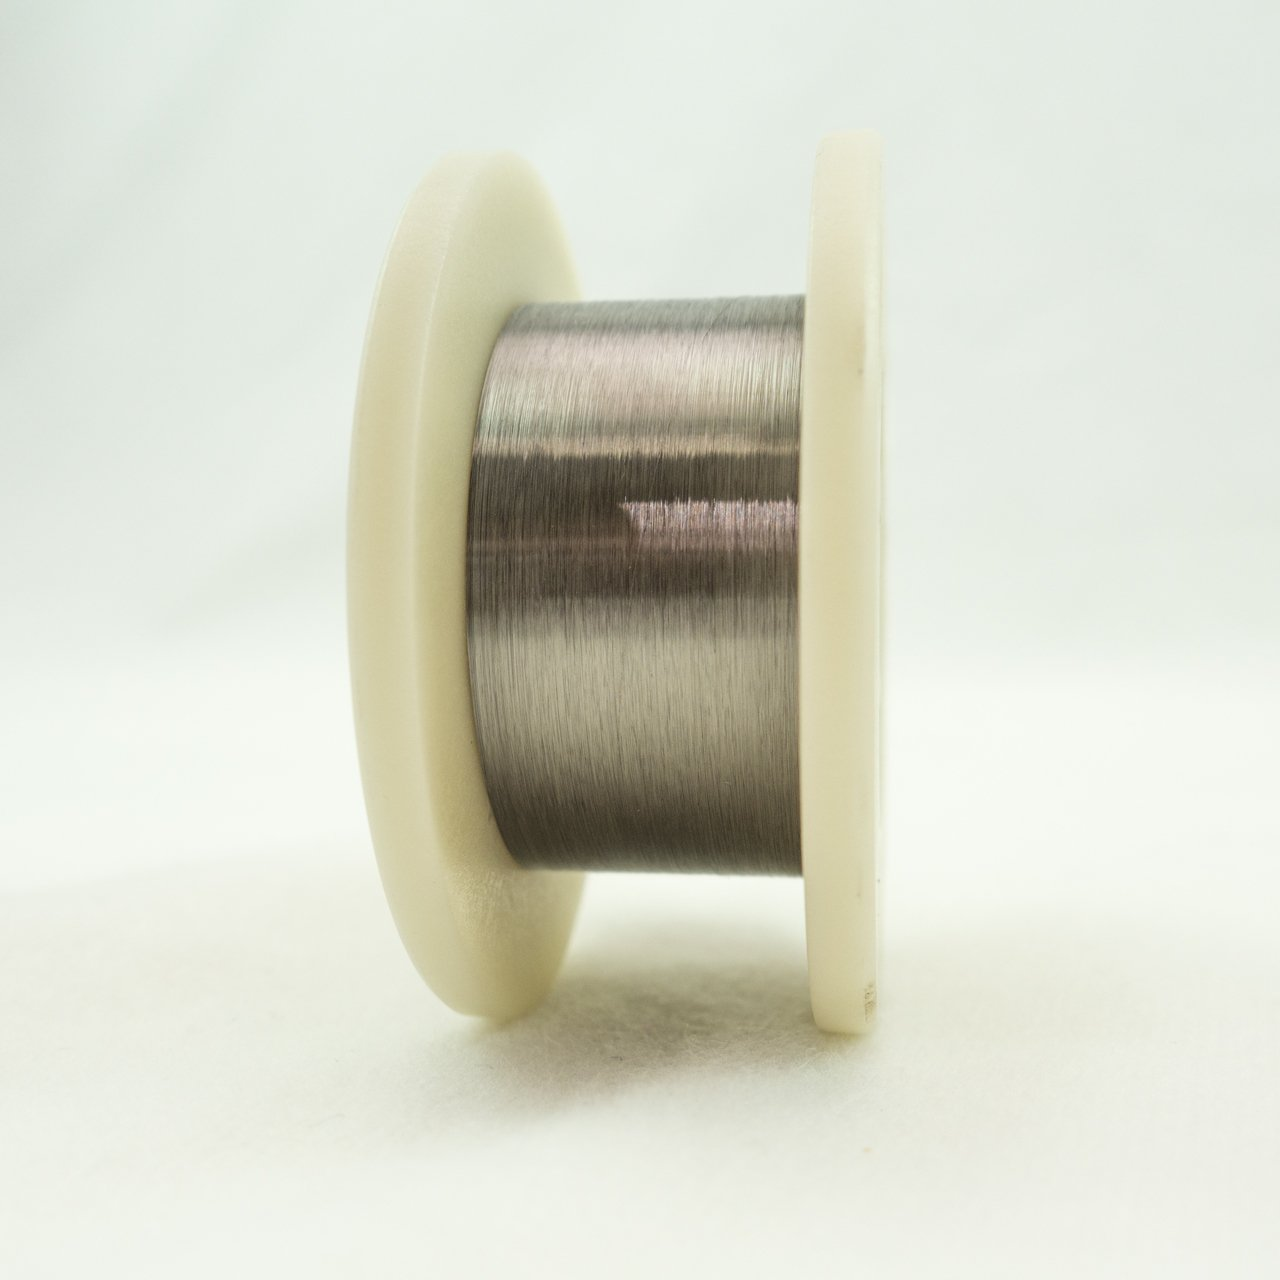 0.0010'' (0.0254 mm) Diameter 99.95% Tungsten Fine Wire, 500 meter/spool, cleaned and straightened